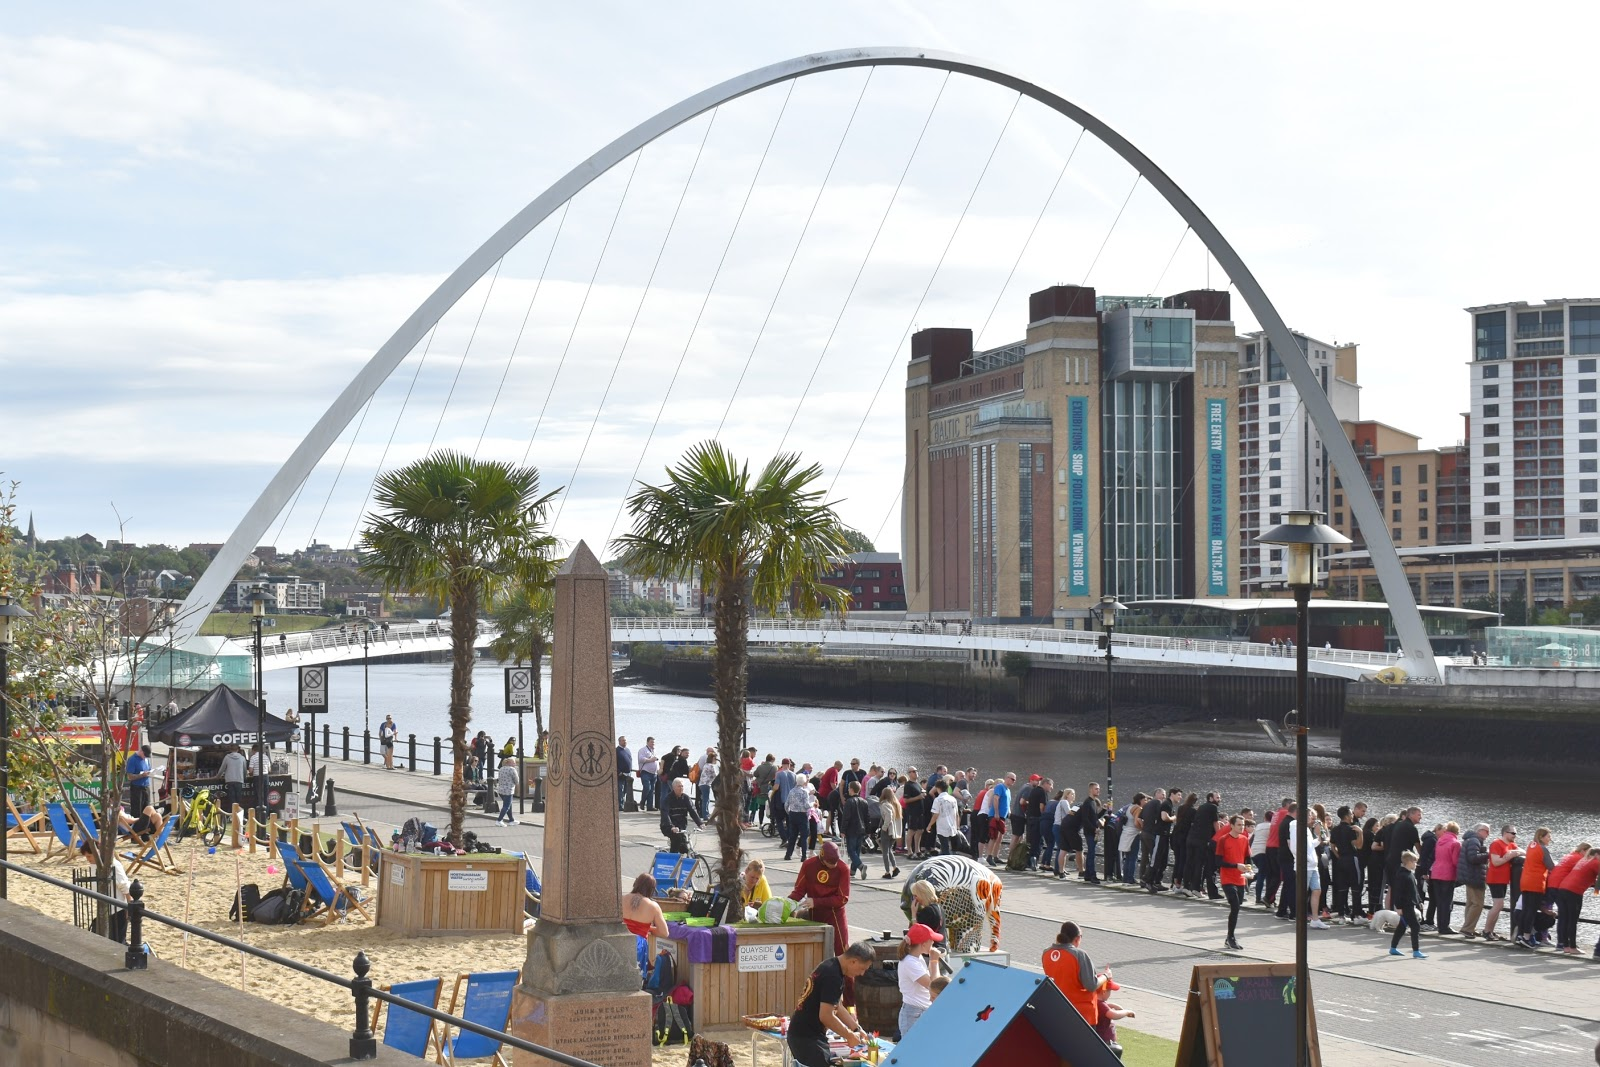 The Toon Tour - Exploring Newcastle and Gateshead - Quayside